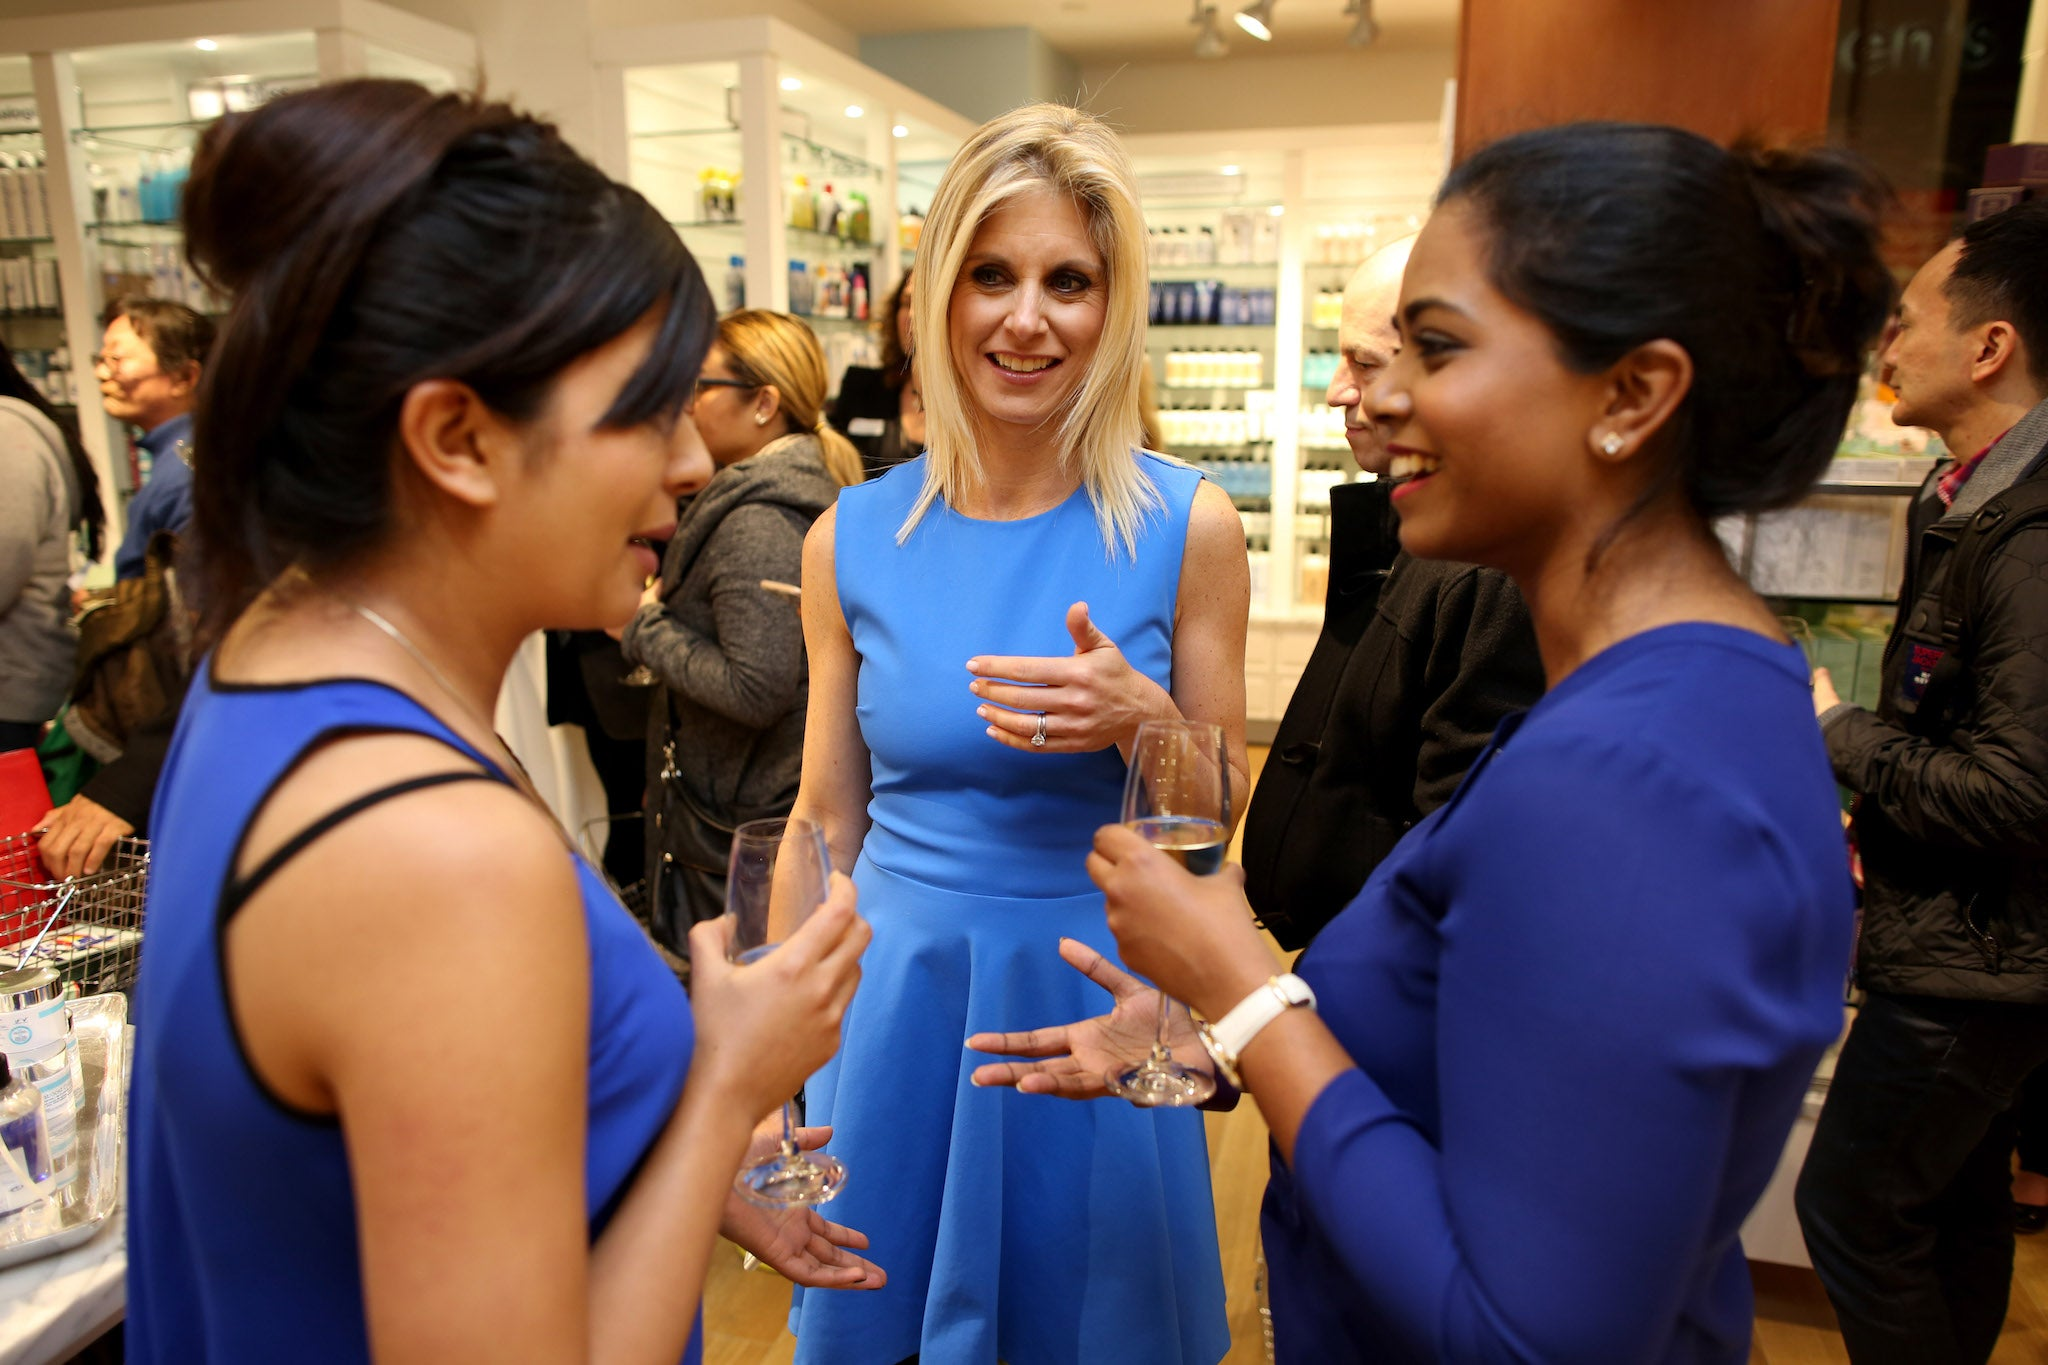 Marla Beck, Bluemercury Co-founder, at the grand opening of Bluemercury Shop-in-Shop at Macy's, San Francisco.